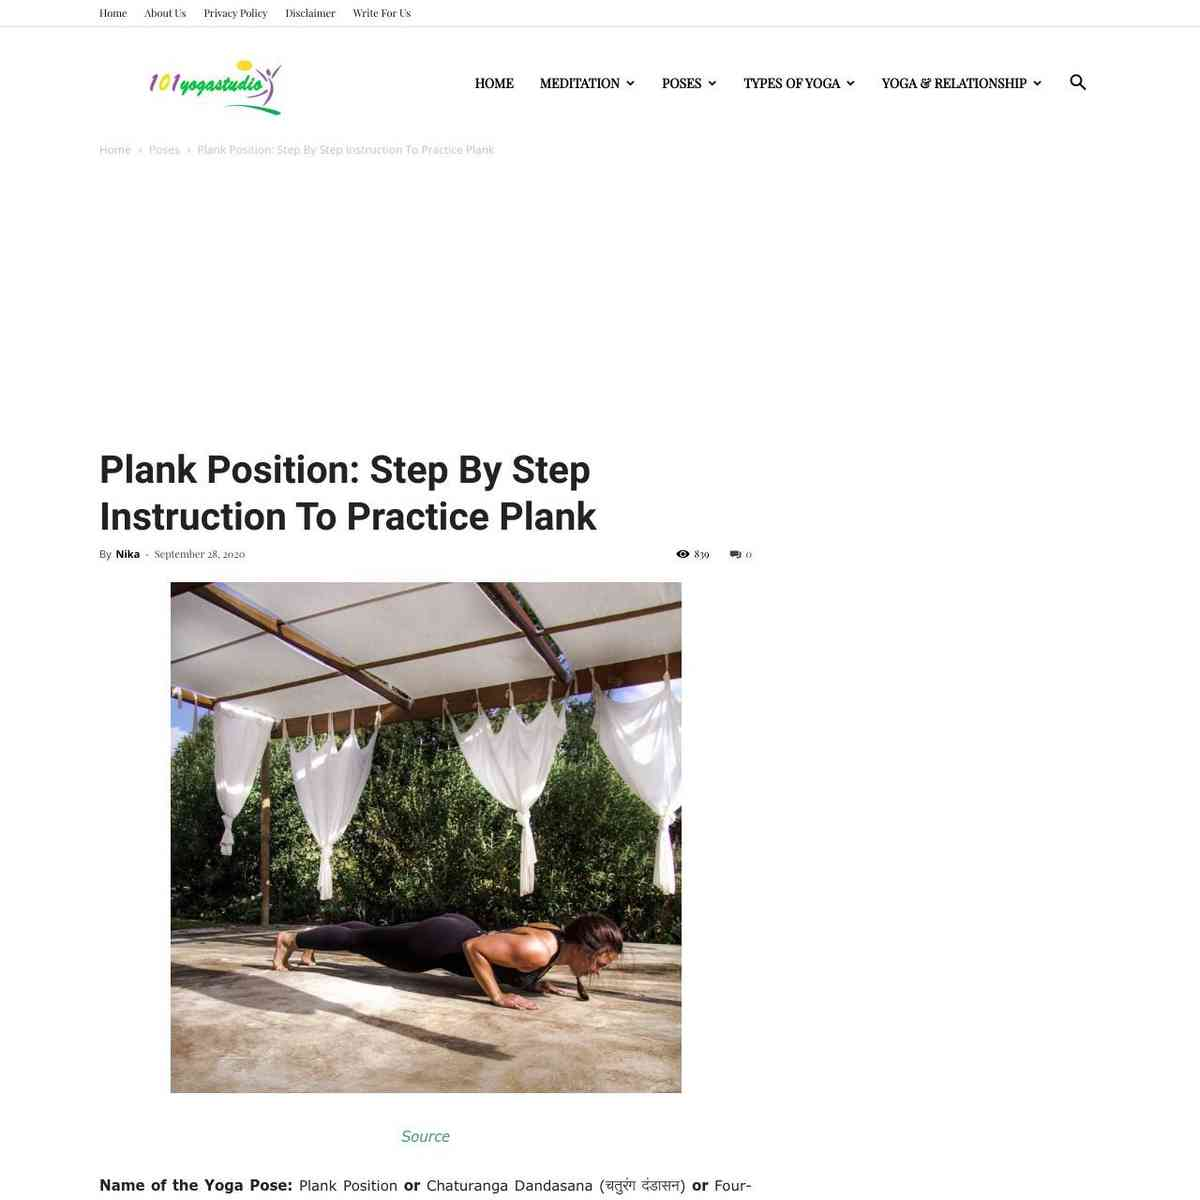 Plank Position: Step By Step Instruction To Practice Plank